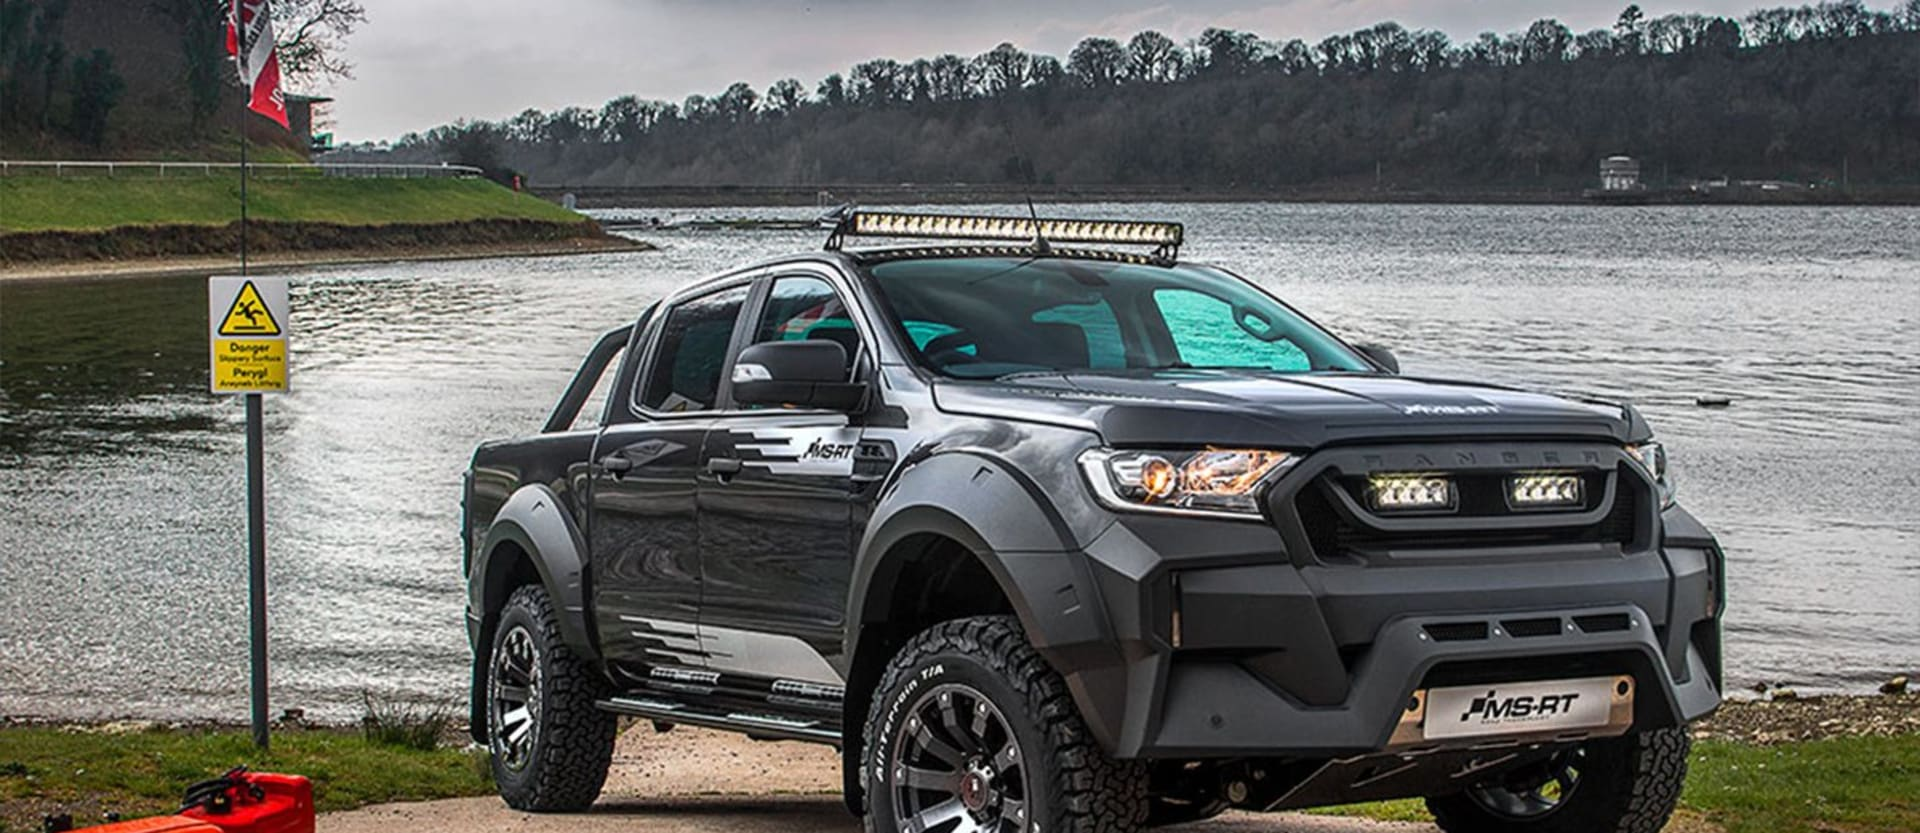 MS-RT Ford Ranger adds visual impact to dual-cab hero